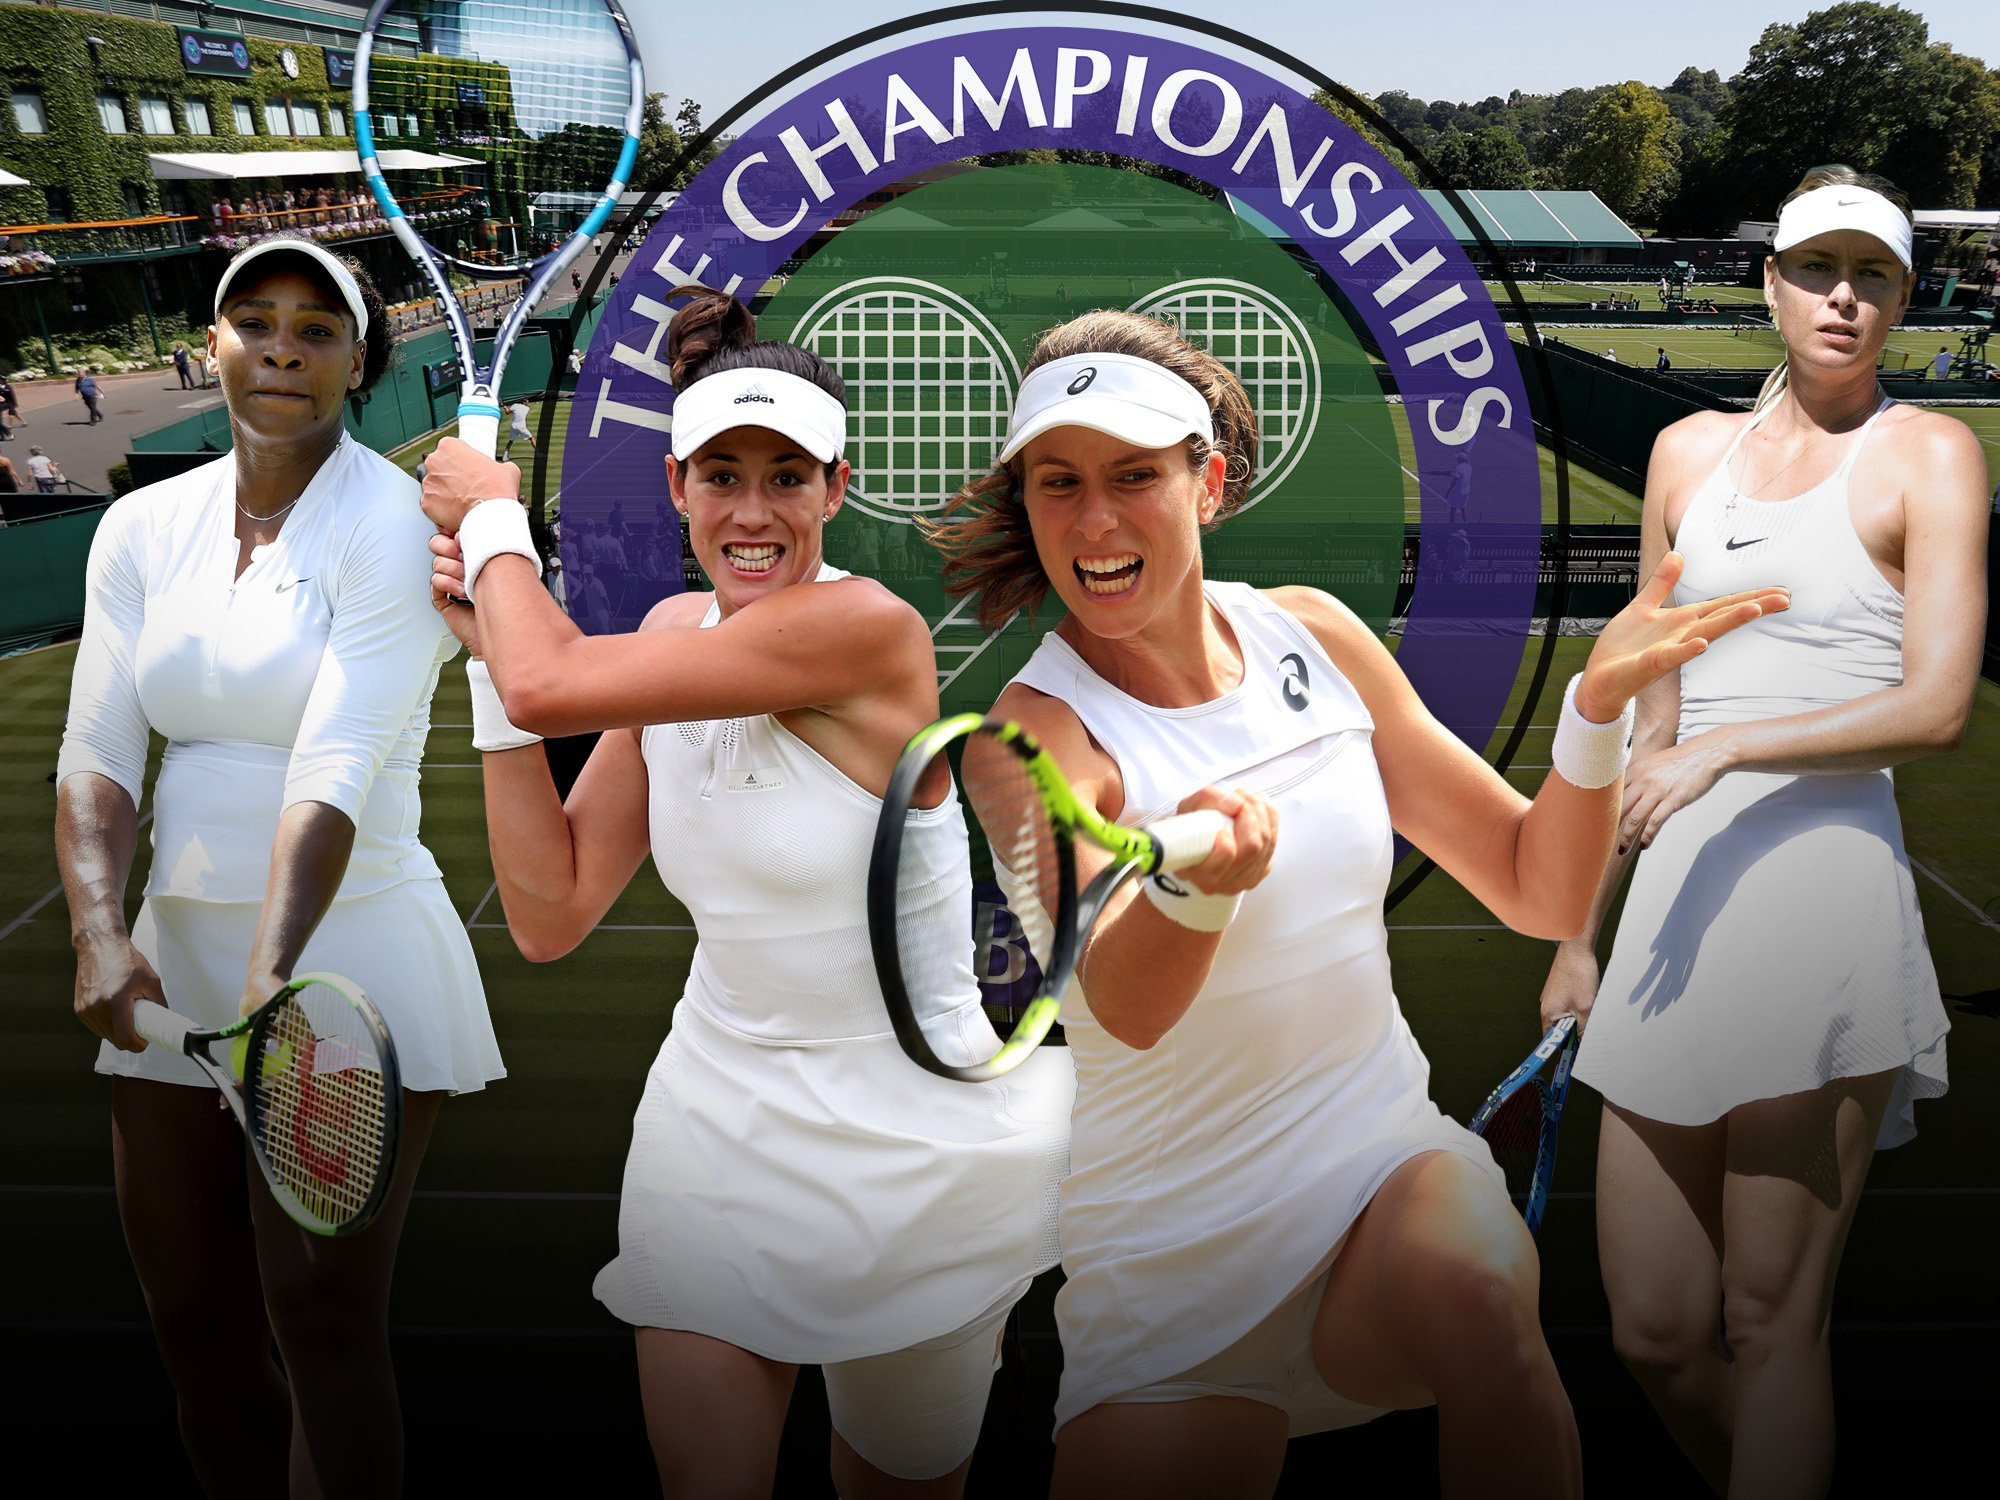 Wimbledon preview: Returning cast add further unpredictability to ladies' singles